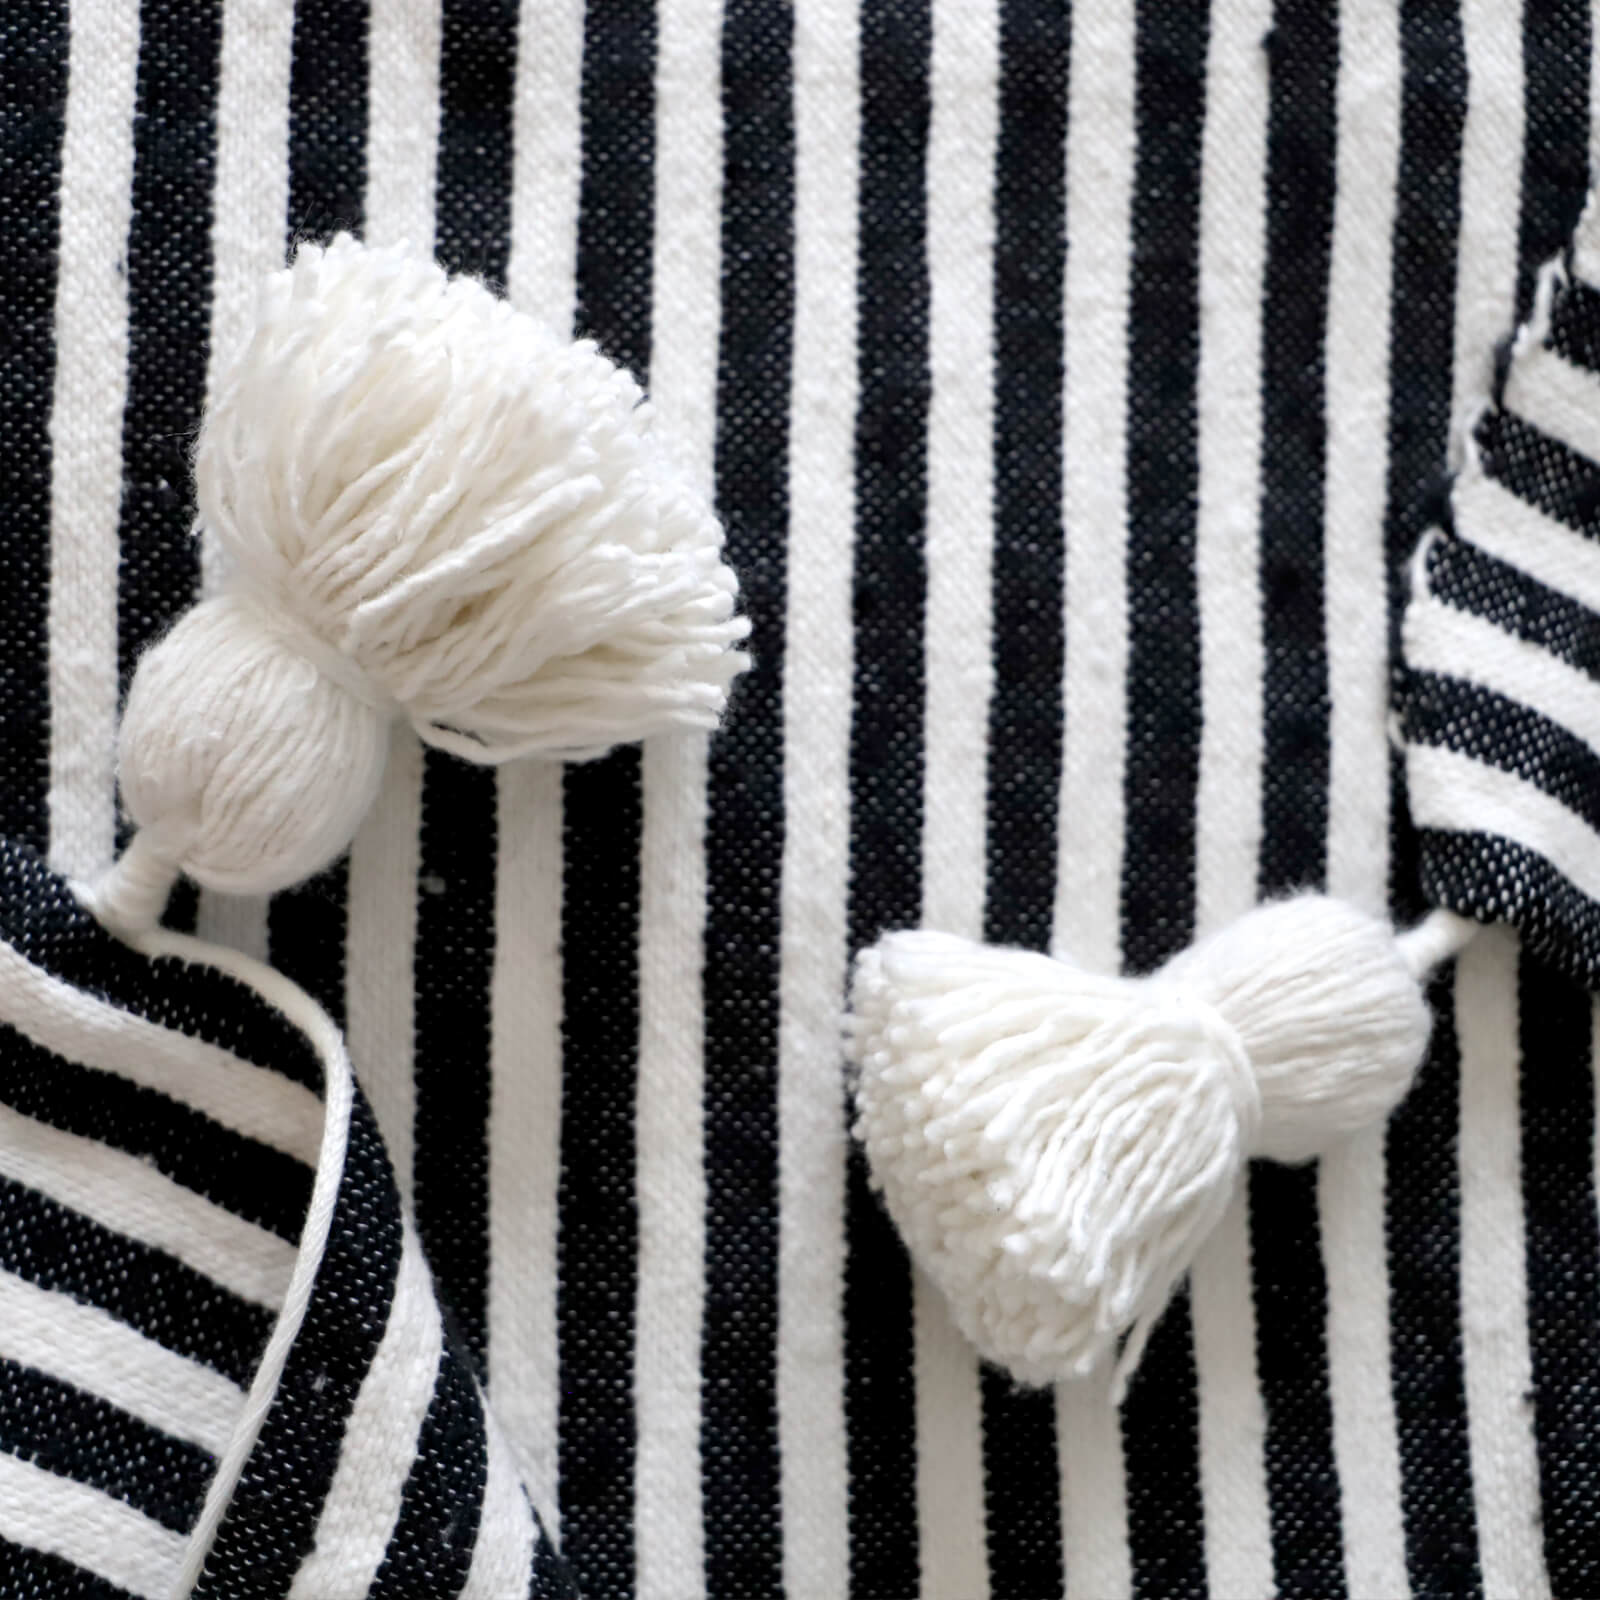 Authentic Hand Woven Moroccan Throw Blanket with Tassels - Black and White with White Tassels